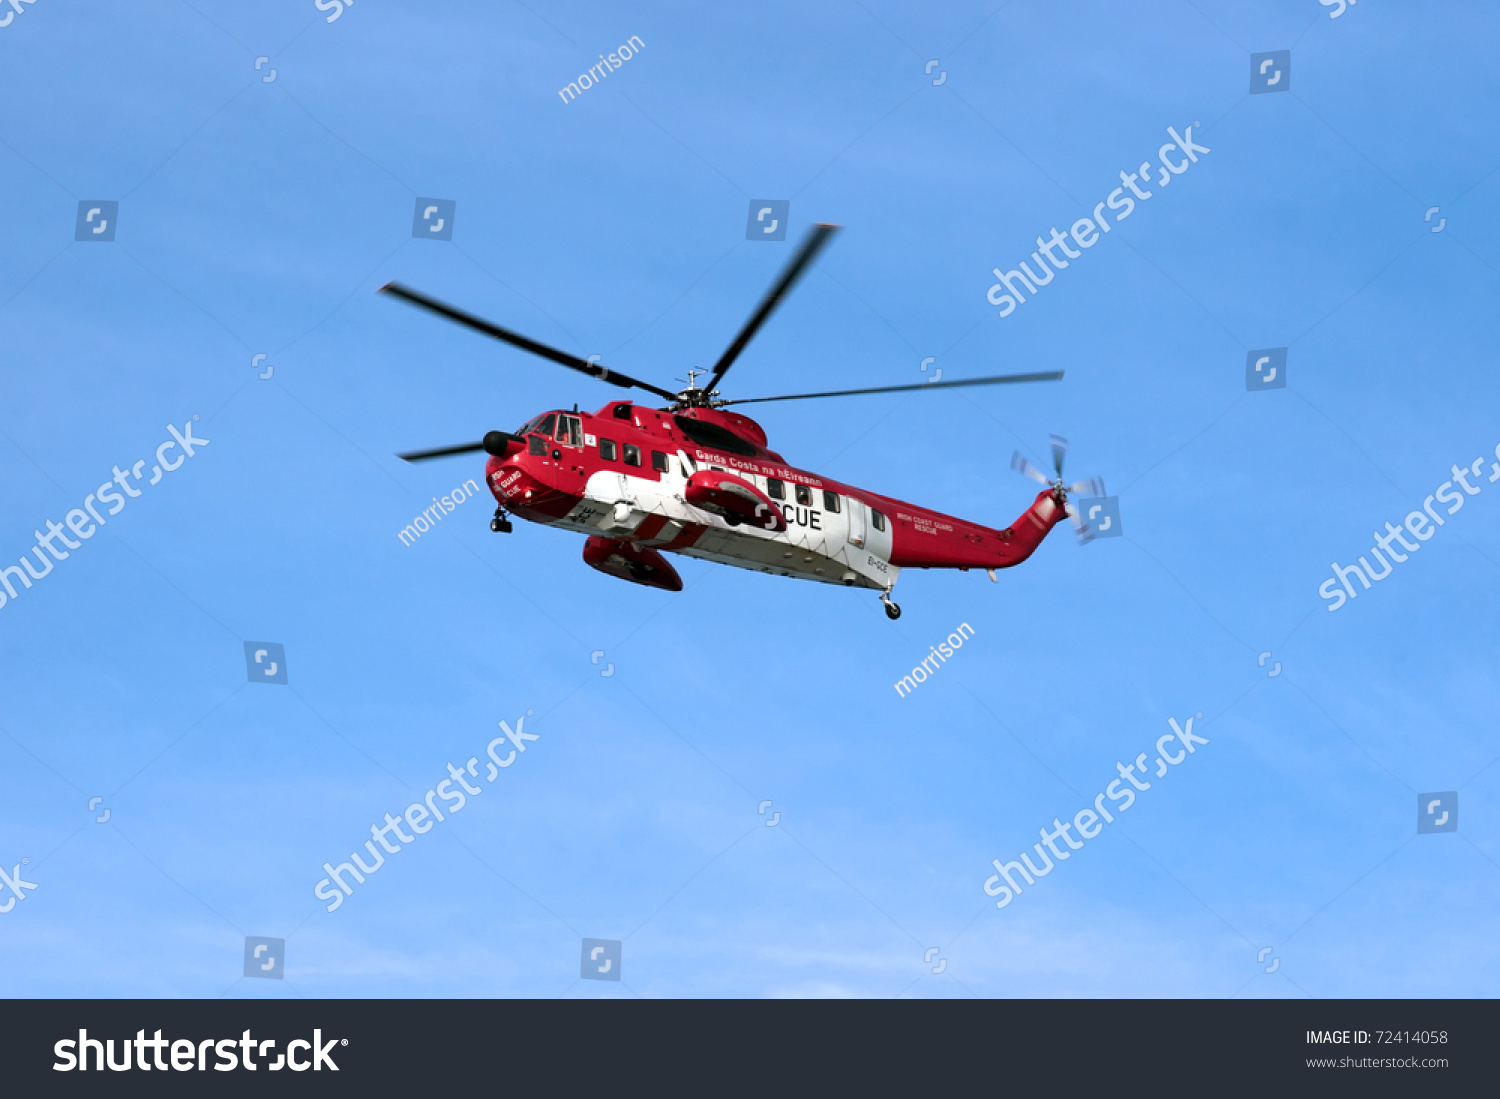 become a coast guard helicopter pilot with Stock Photo Ballybunion Ireland March Irish Sea Rescue Helicopter Searches For Missing Person Near Cliffs On on 237nxm also Dance Of The Dead Nude All together with Home additionally Blackwater also Girl barrel racing shirts 235120183768738316.